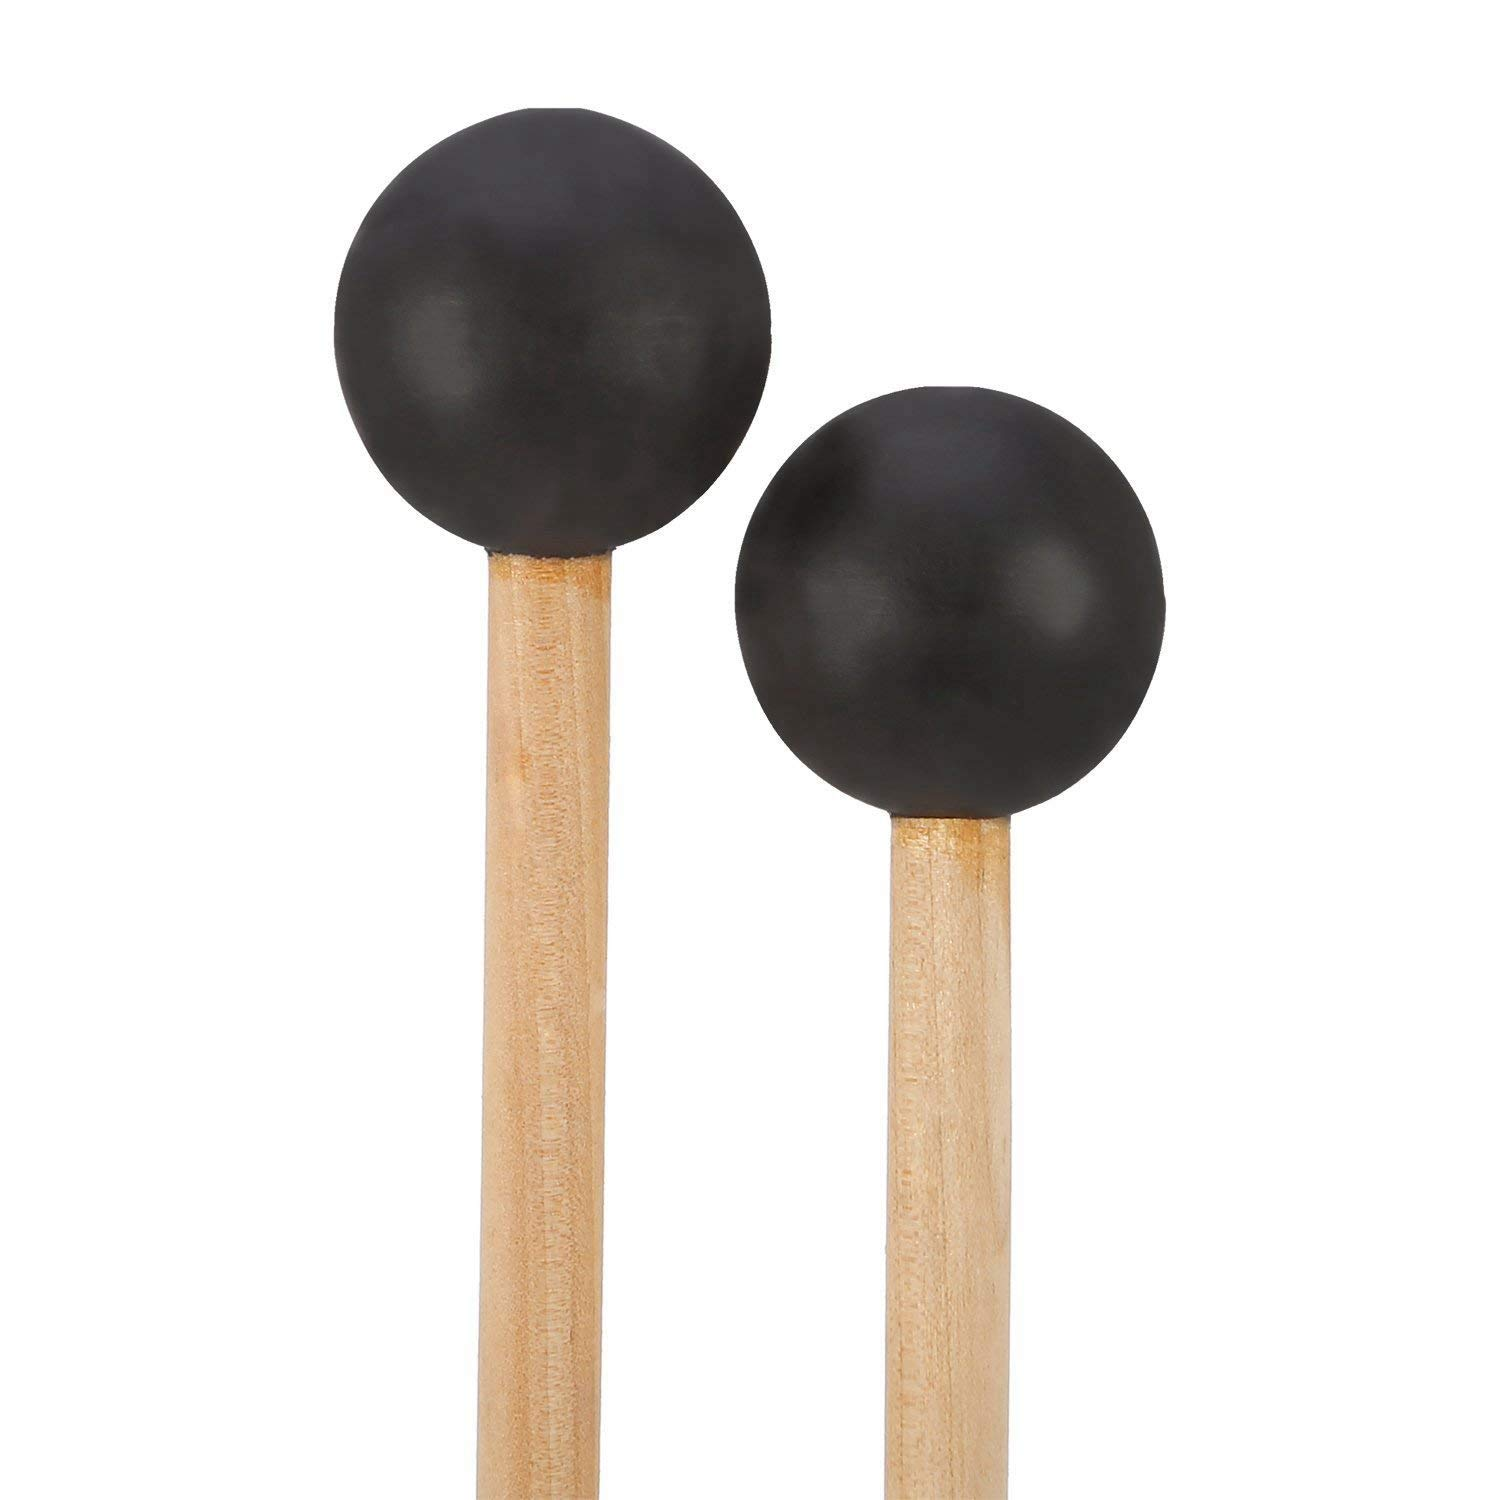 TOOGOO Bell Mallets Glockenspiel Sticks, Rubber Mallet Percussion with Wood Handle, 15 Inch Long (Black)